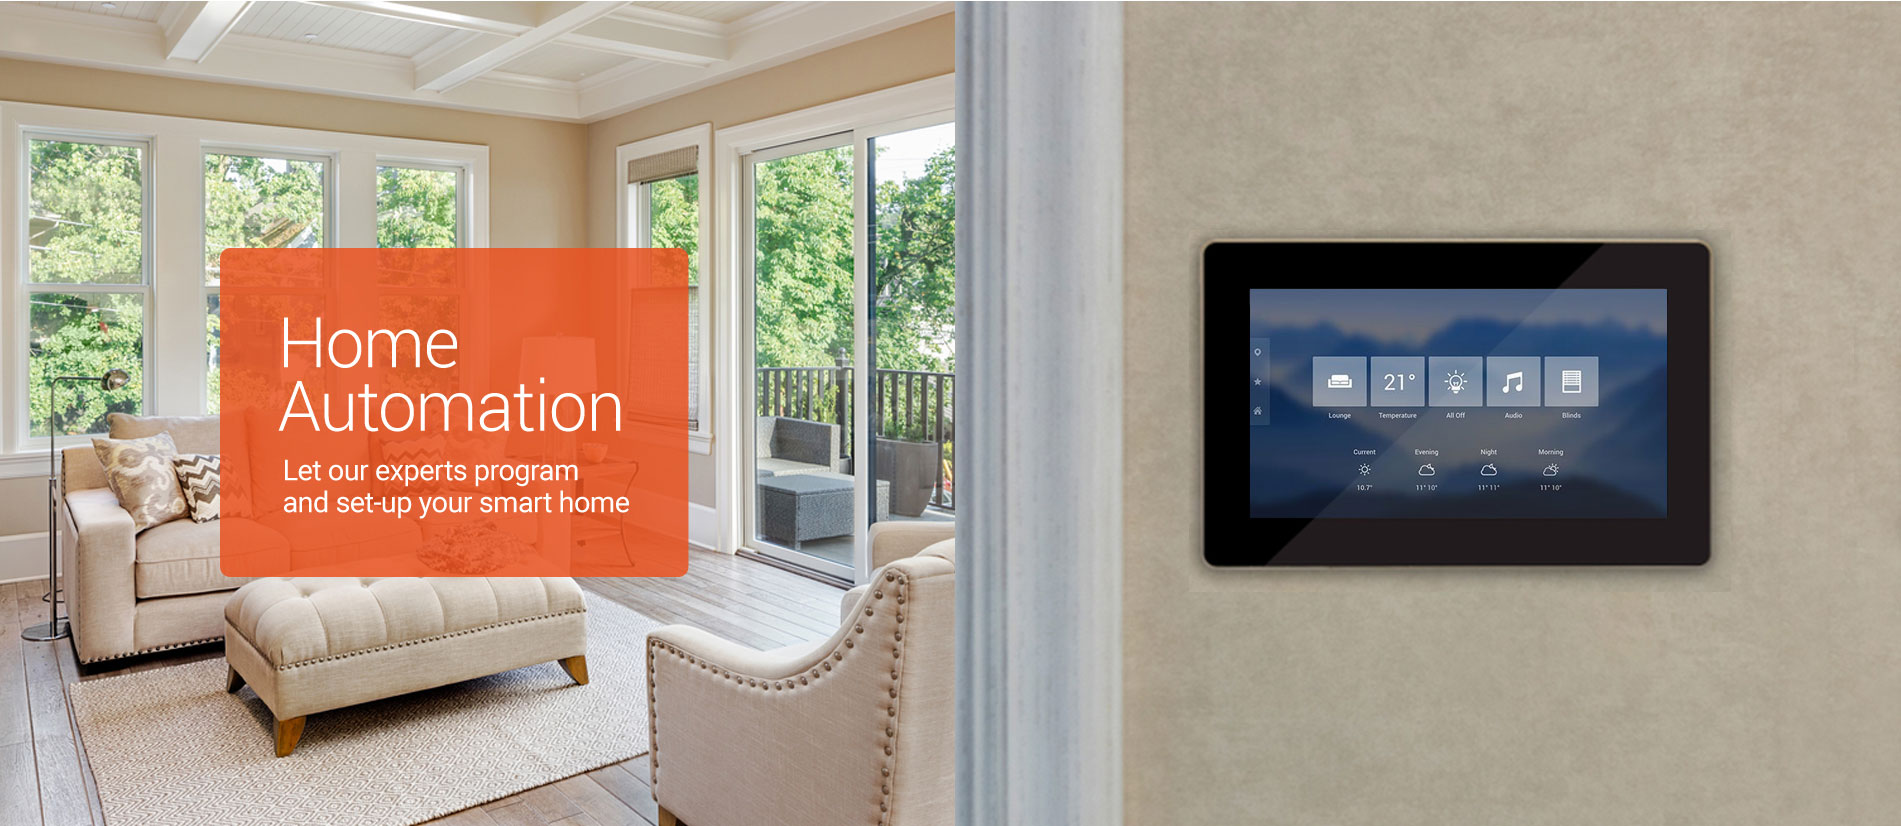 Home Automation Services for your smart home